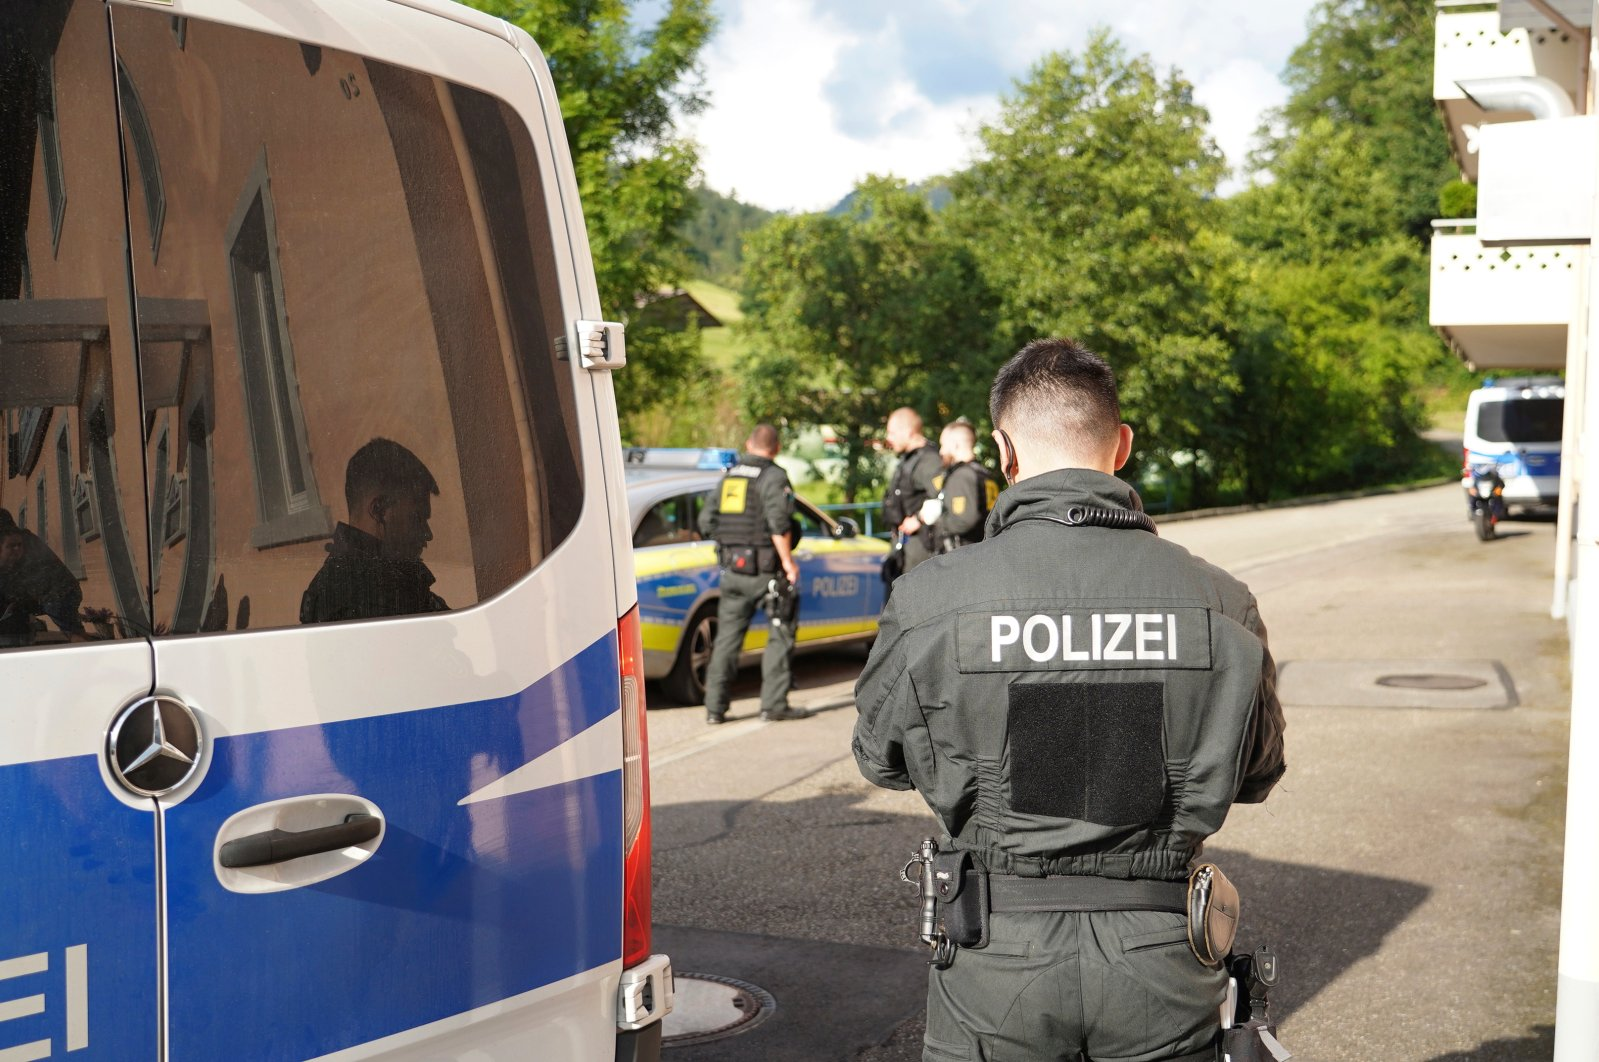 Emergency services and police block off the access to the Ramsbach district of Oppenau, Germany, July 17, 2020. (AP Photo)